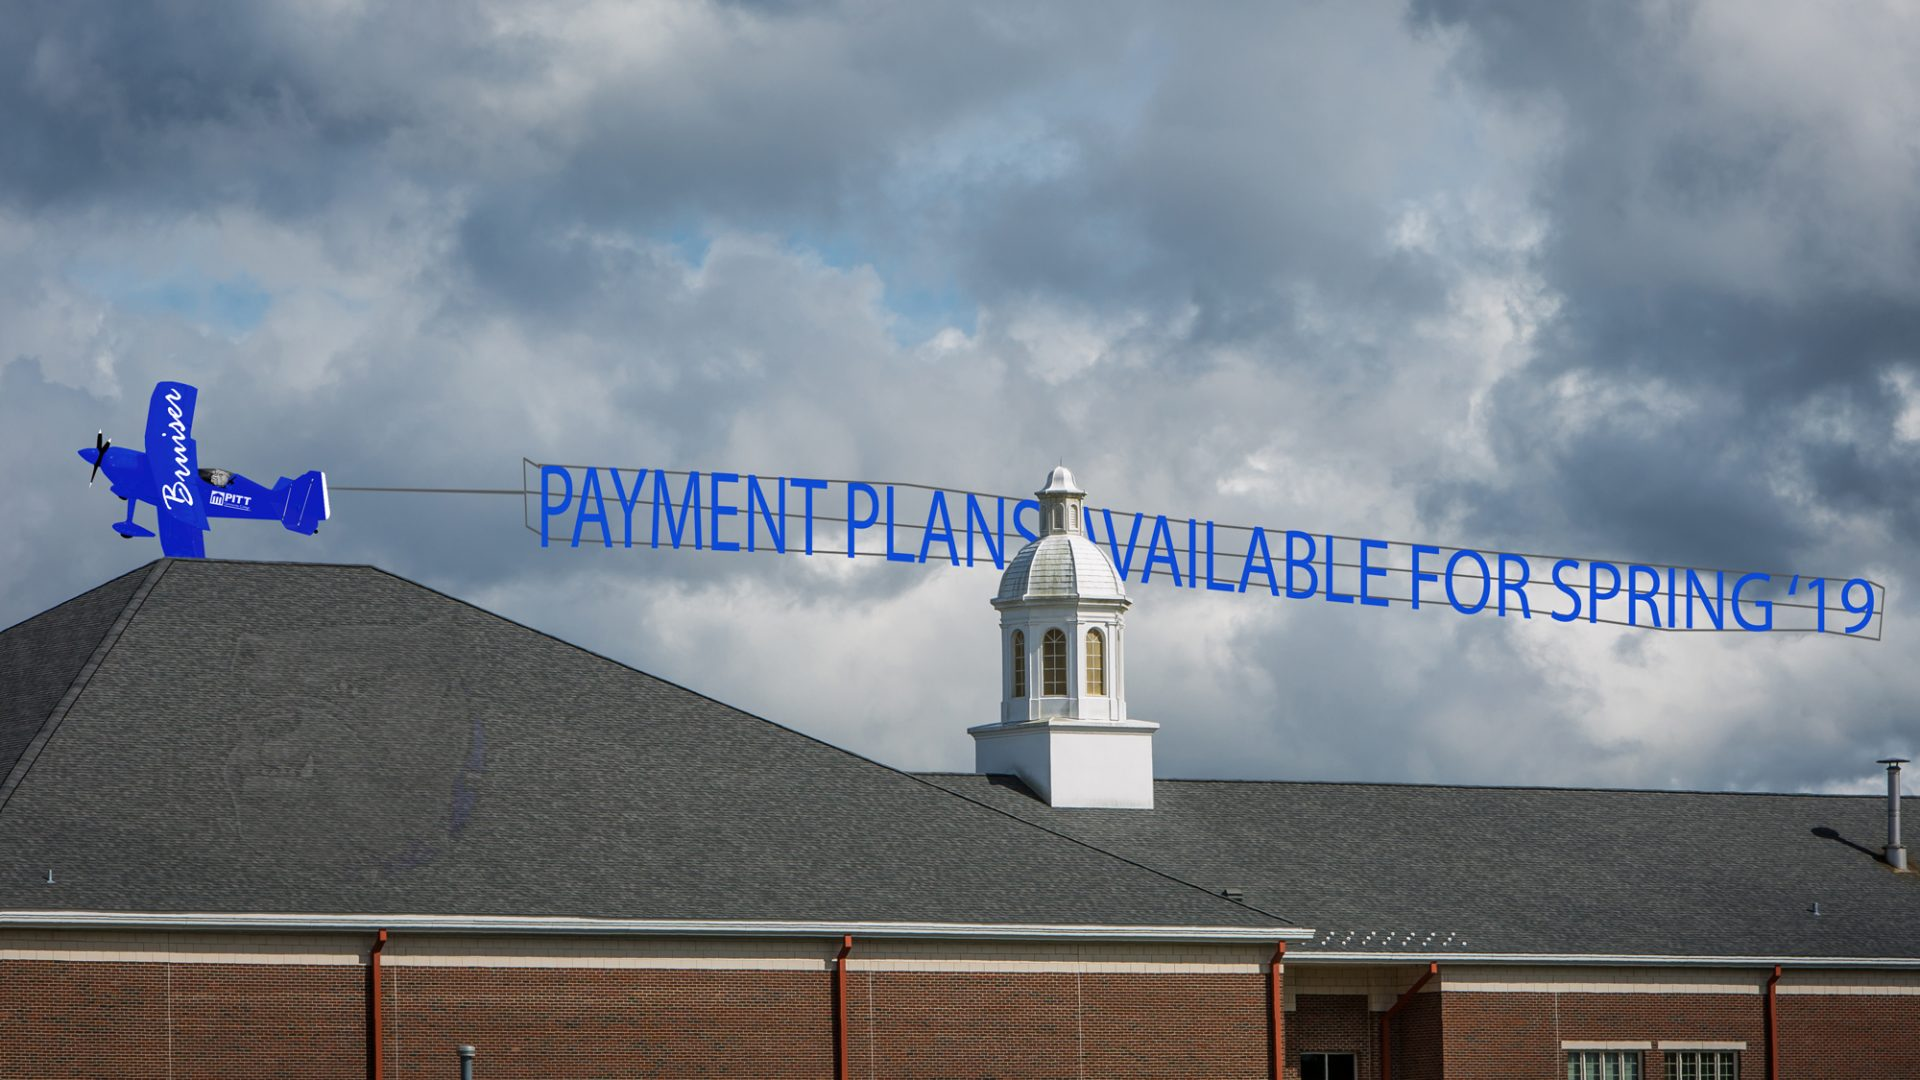 Graphic of blue airplane flying banner announcing payment plans with the Ed & Joan Warren Building in the foreground.